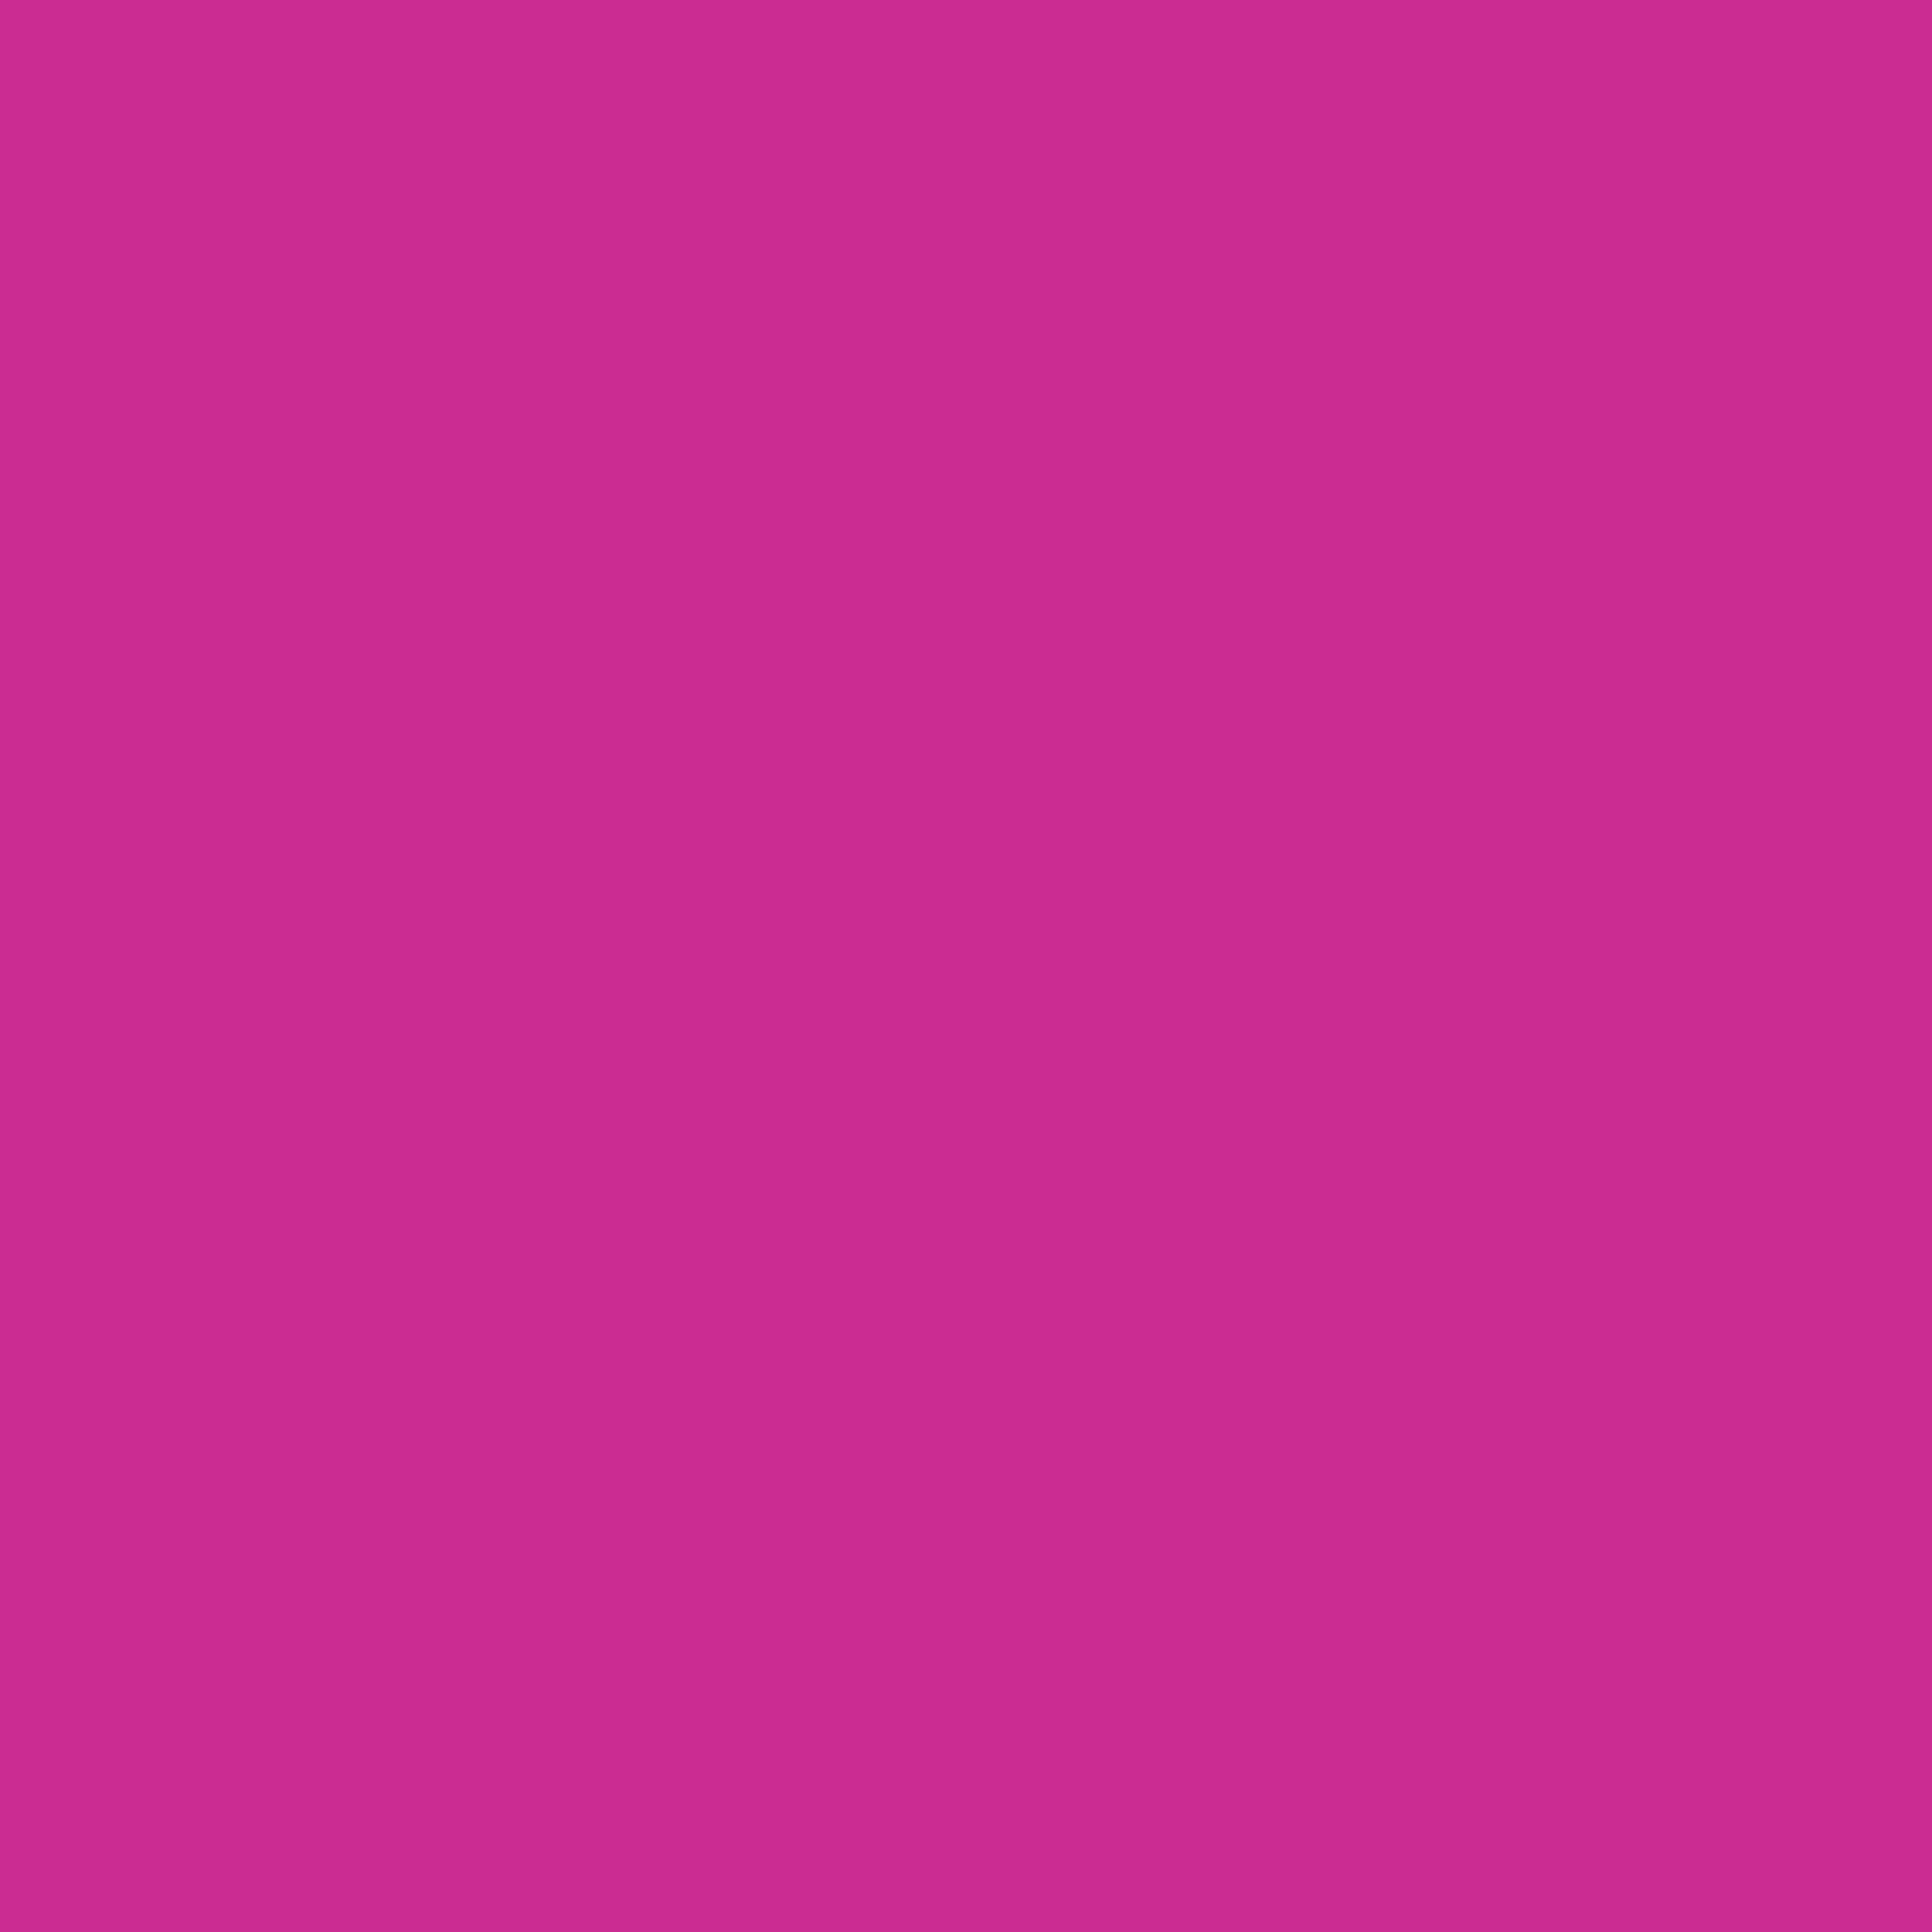 3600x3600 Royal Fuchsia Solid Color Background